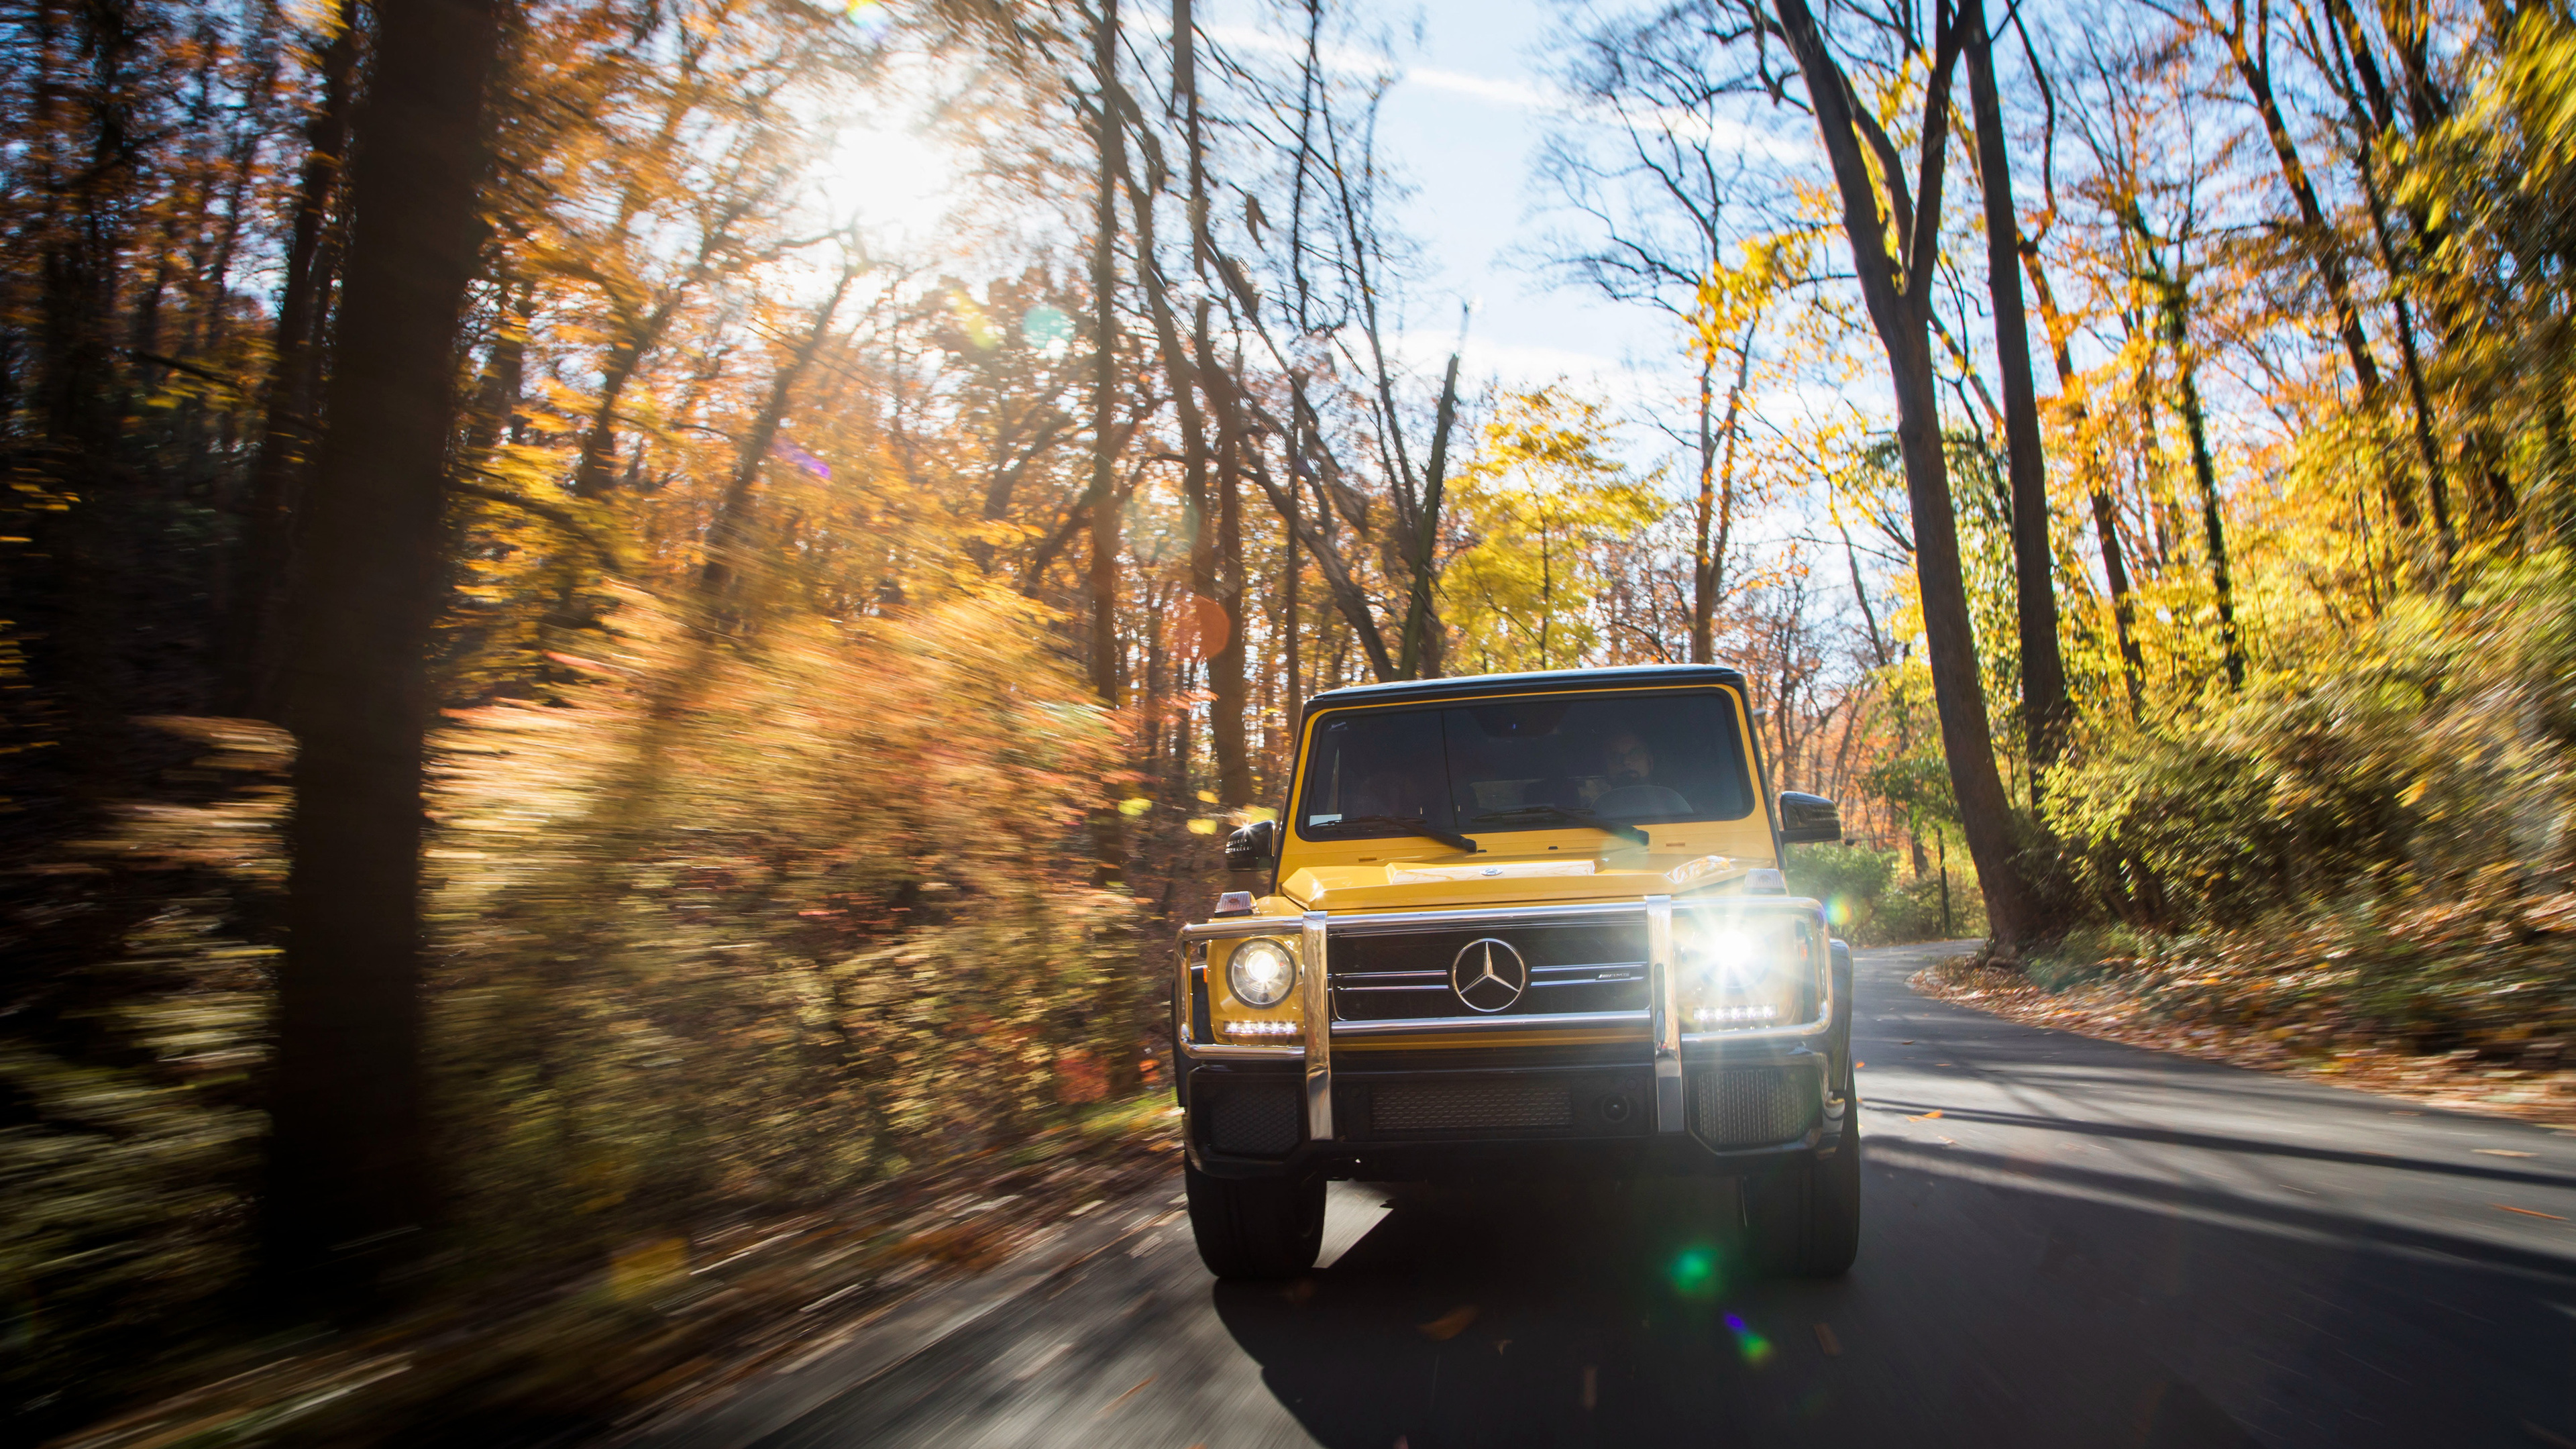 2017 mercedes amg g63 yellow 4k 1539108786 - 2017 Mercedes AMG G63 Yellow 4k - mercedes wallpapers, mercedes g class wallpapers, mercedes benz wallpapers, mercedes amg wallpapers, hd-wallpapers, cars wallpapers, 4k-wallpapers, 2017 cars wallpapers